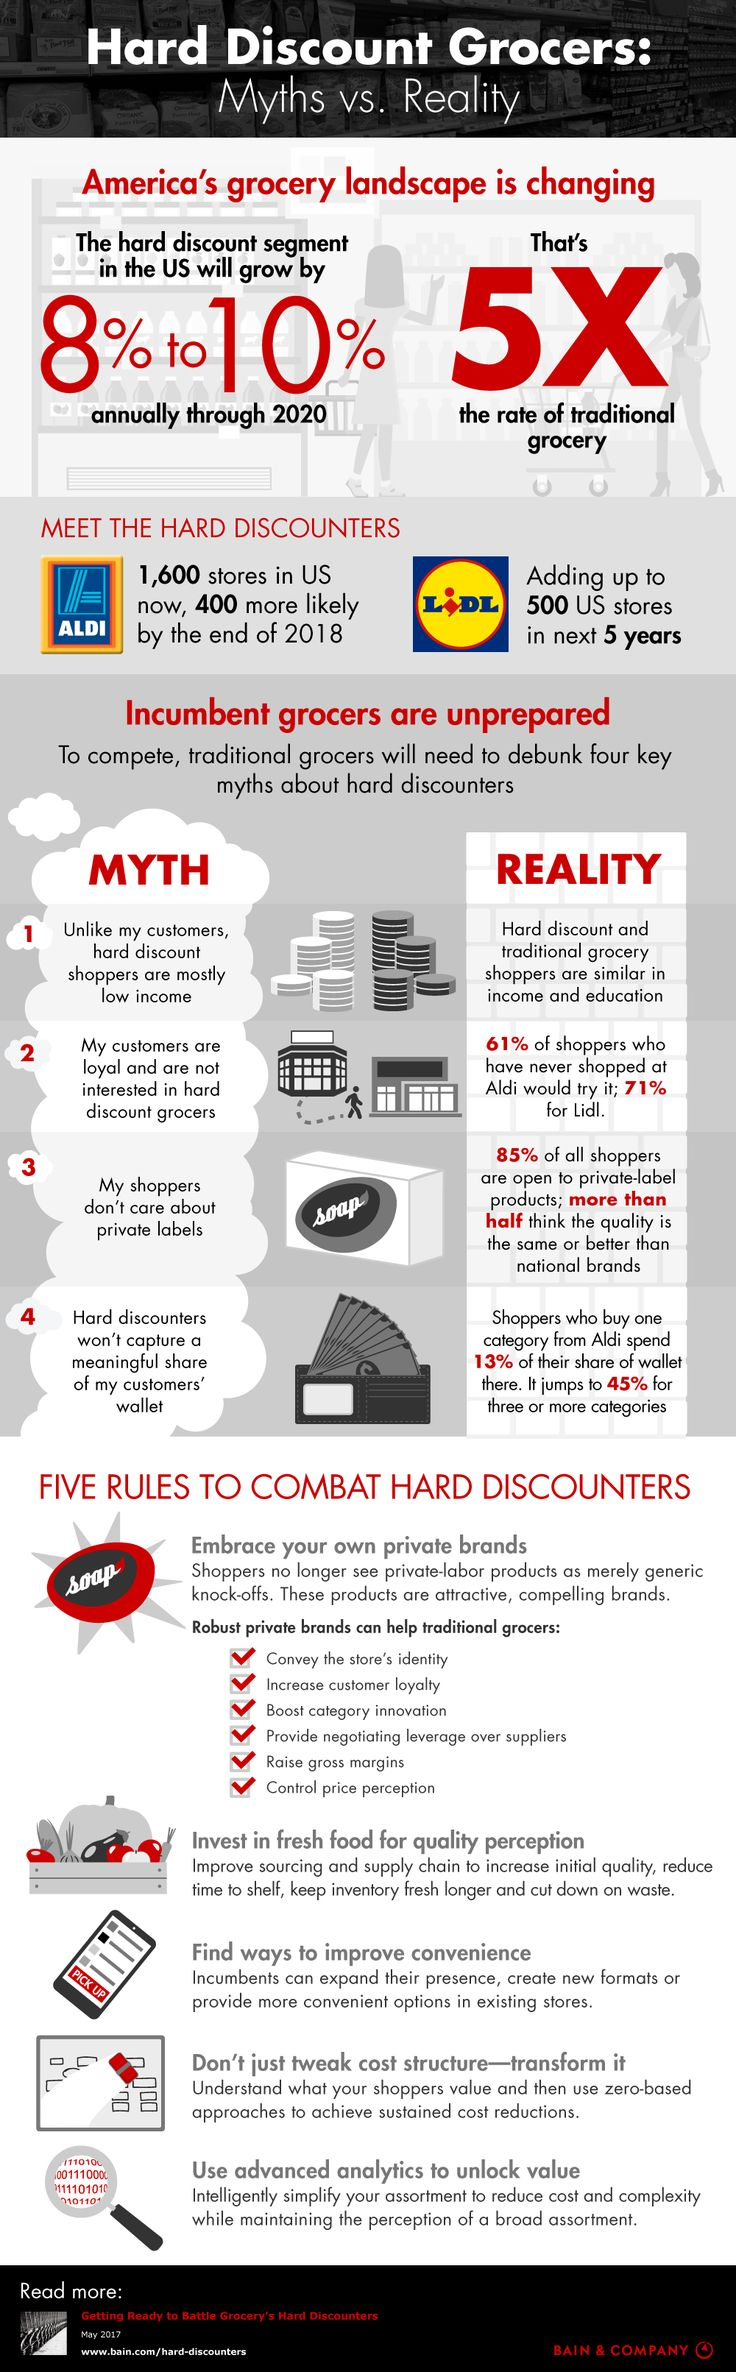 Hard Discount Grocers: Myths vs. Reality